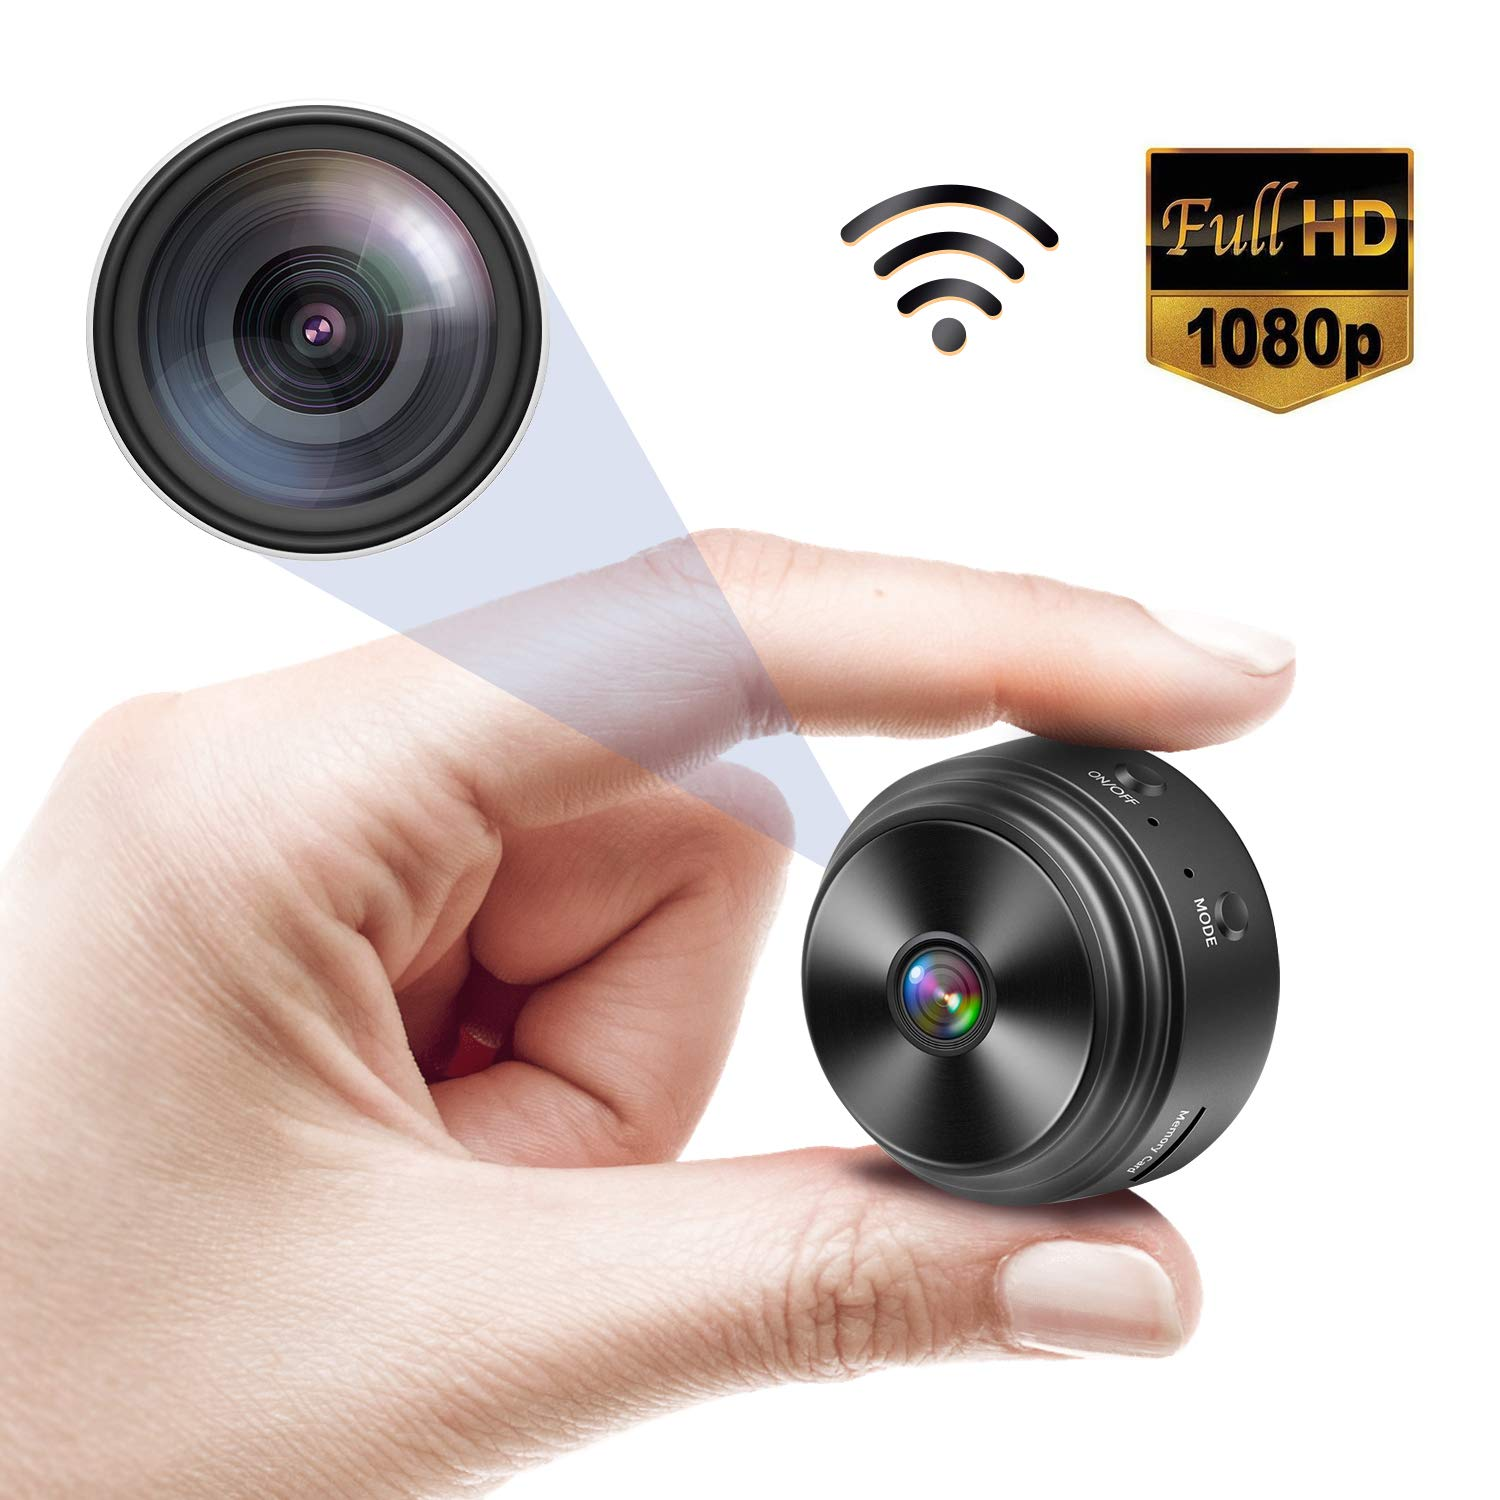 Spy Camera WiFi Wireless Hidden Camera, Small Security Camera, Nanny Cameras and Hidden Cameras for Home, Car, Office, with 150 Wide Angle HD 1080P Night Vision Motion Detection